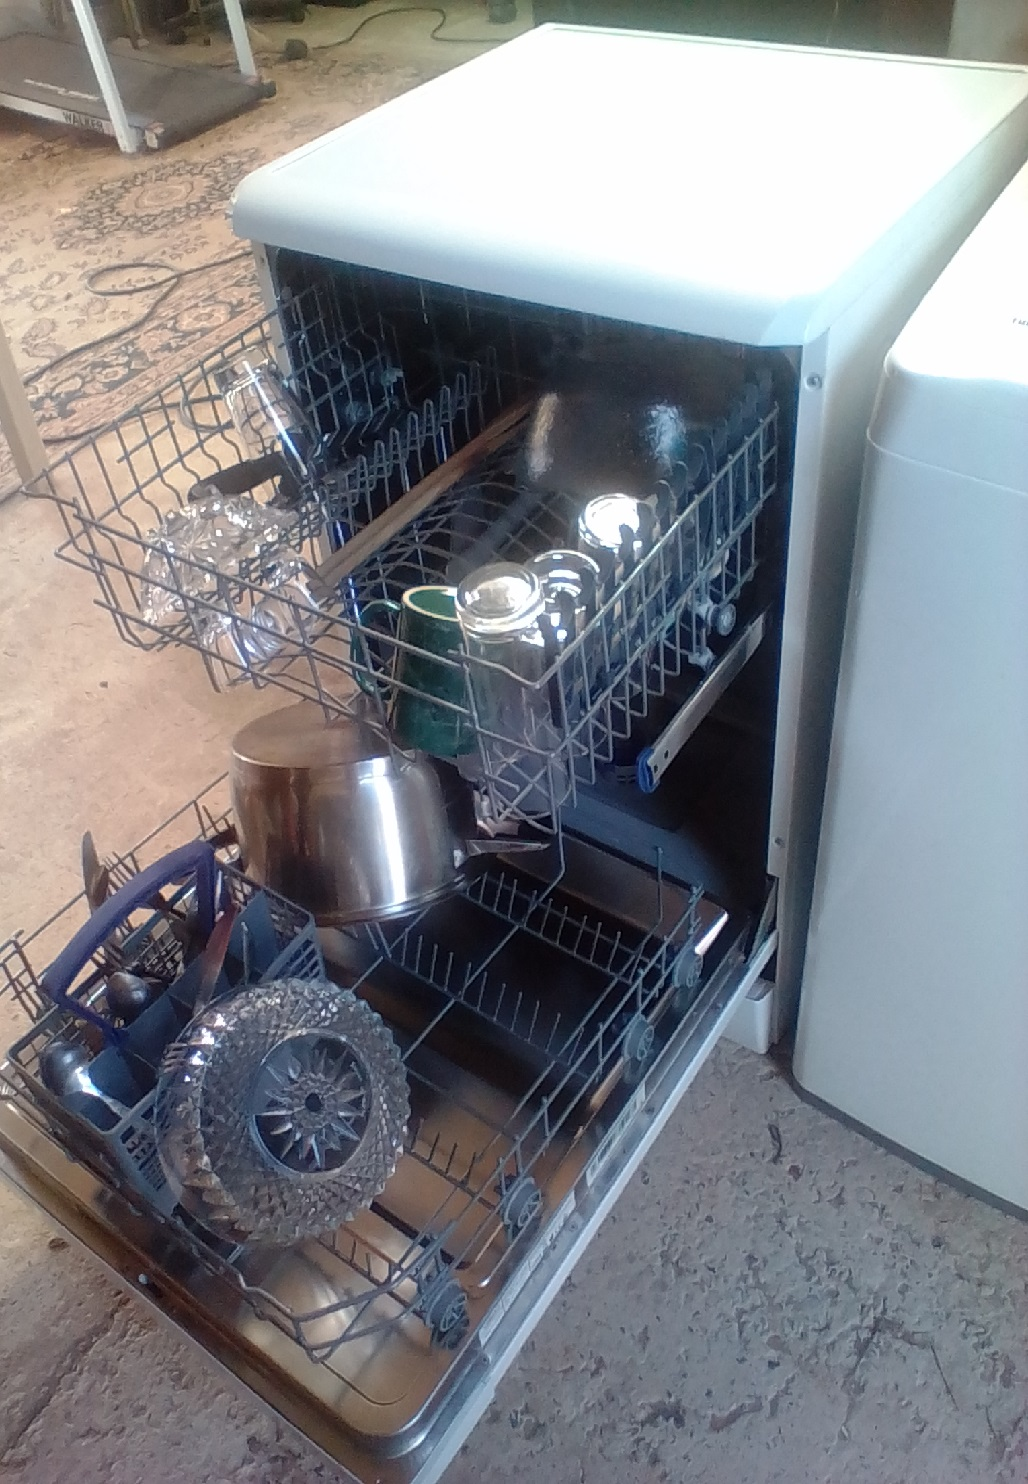 Defy Eco Dishwasher